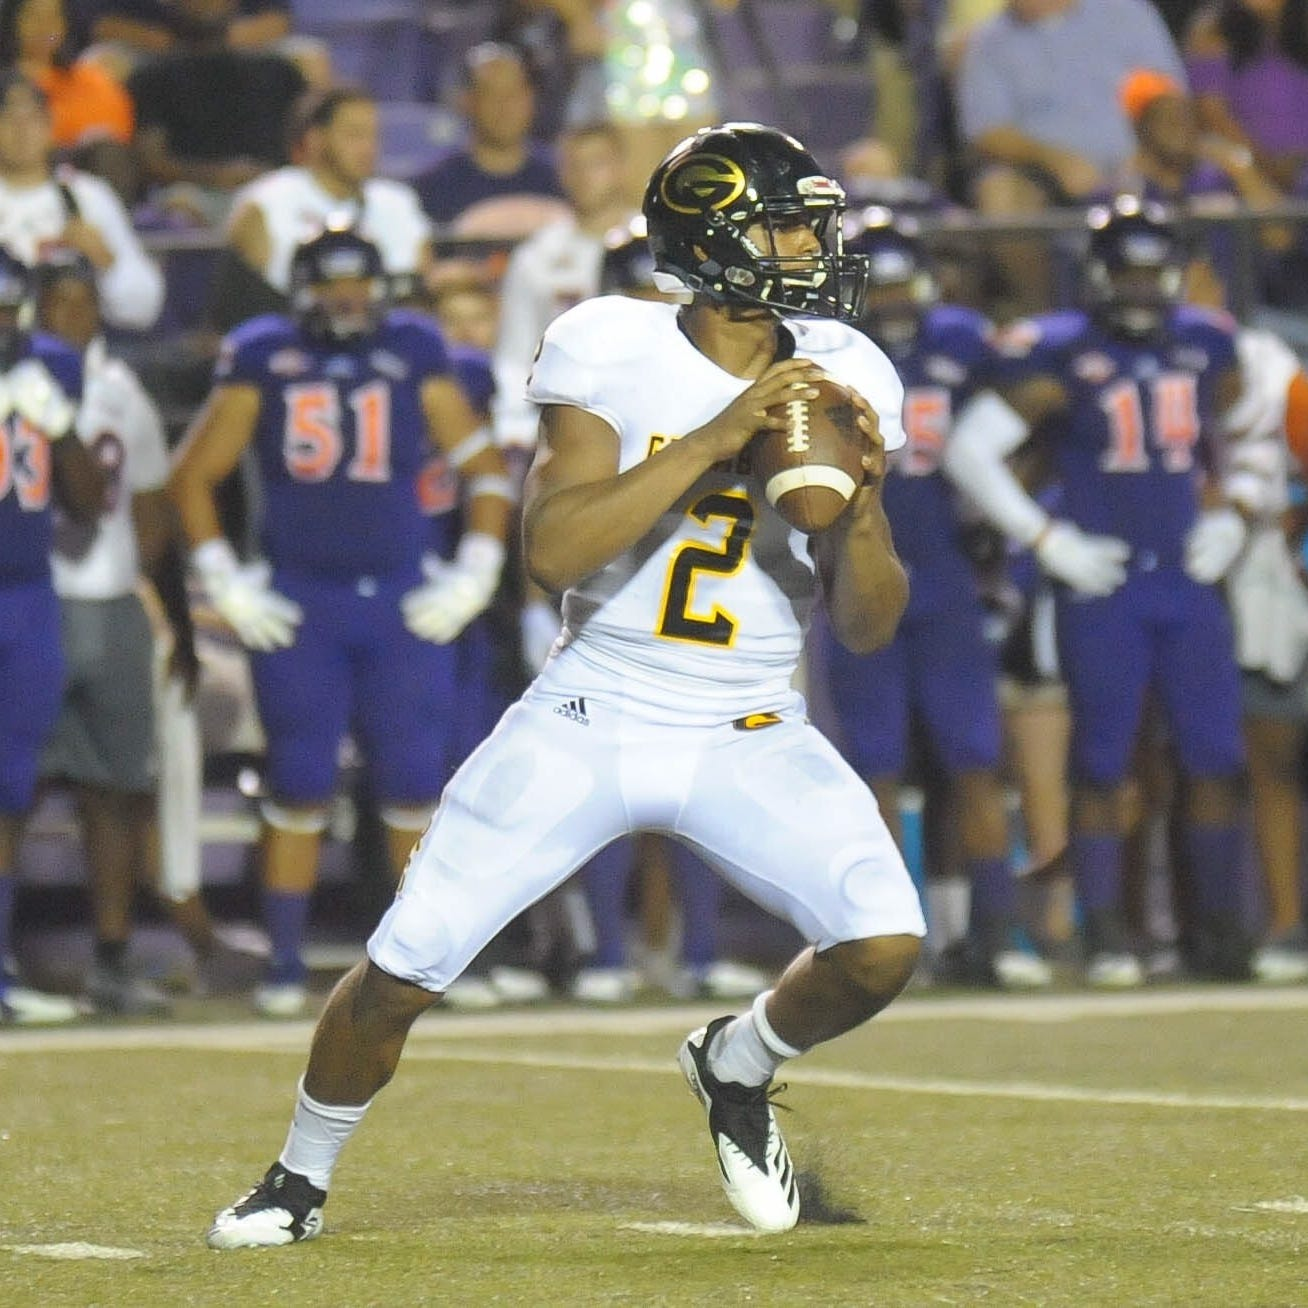 Diaz: Grambling State's offensive rebuild remains on track